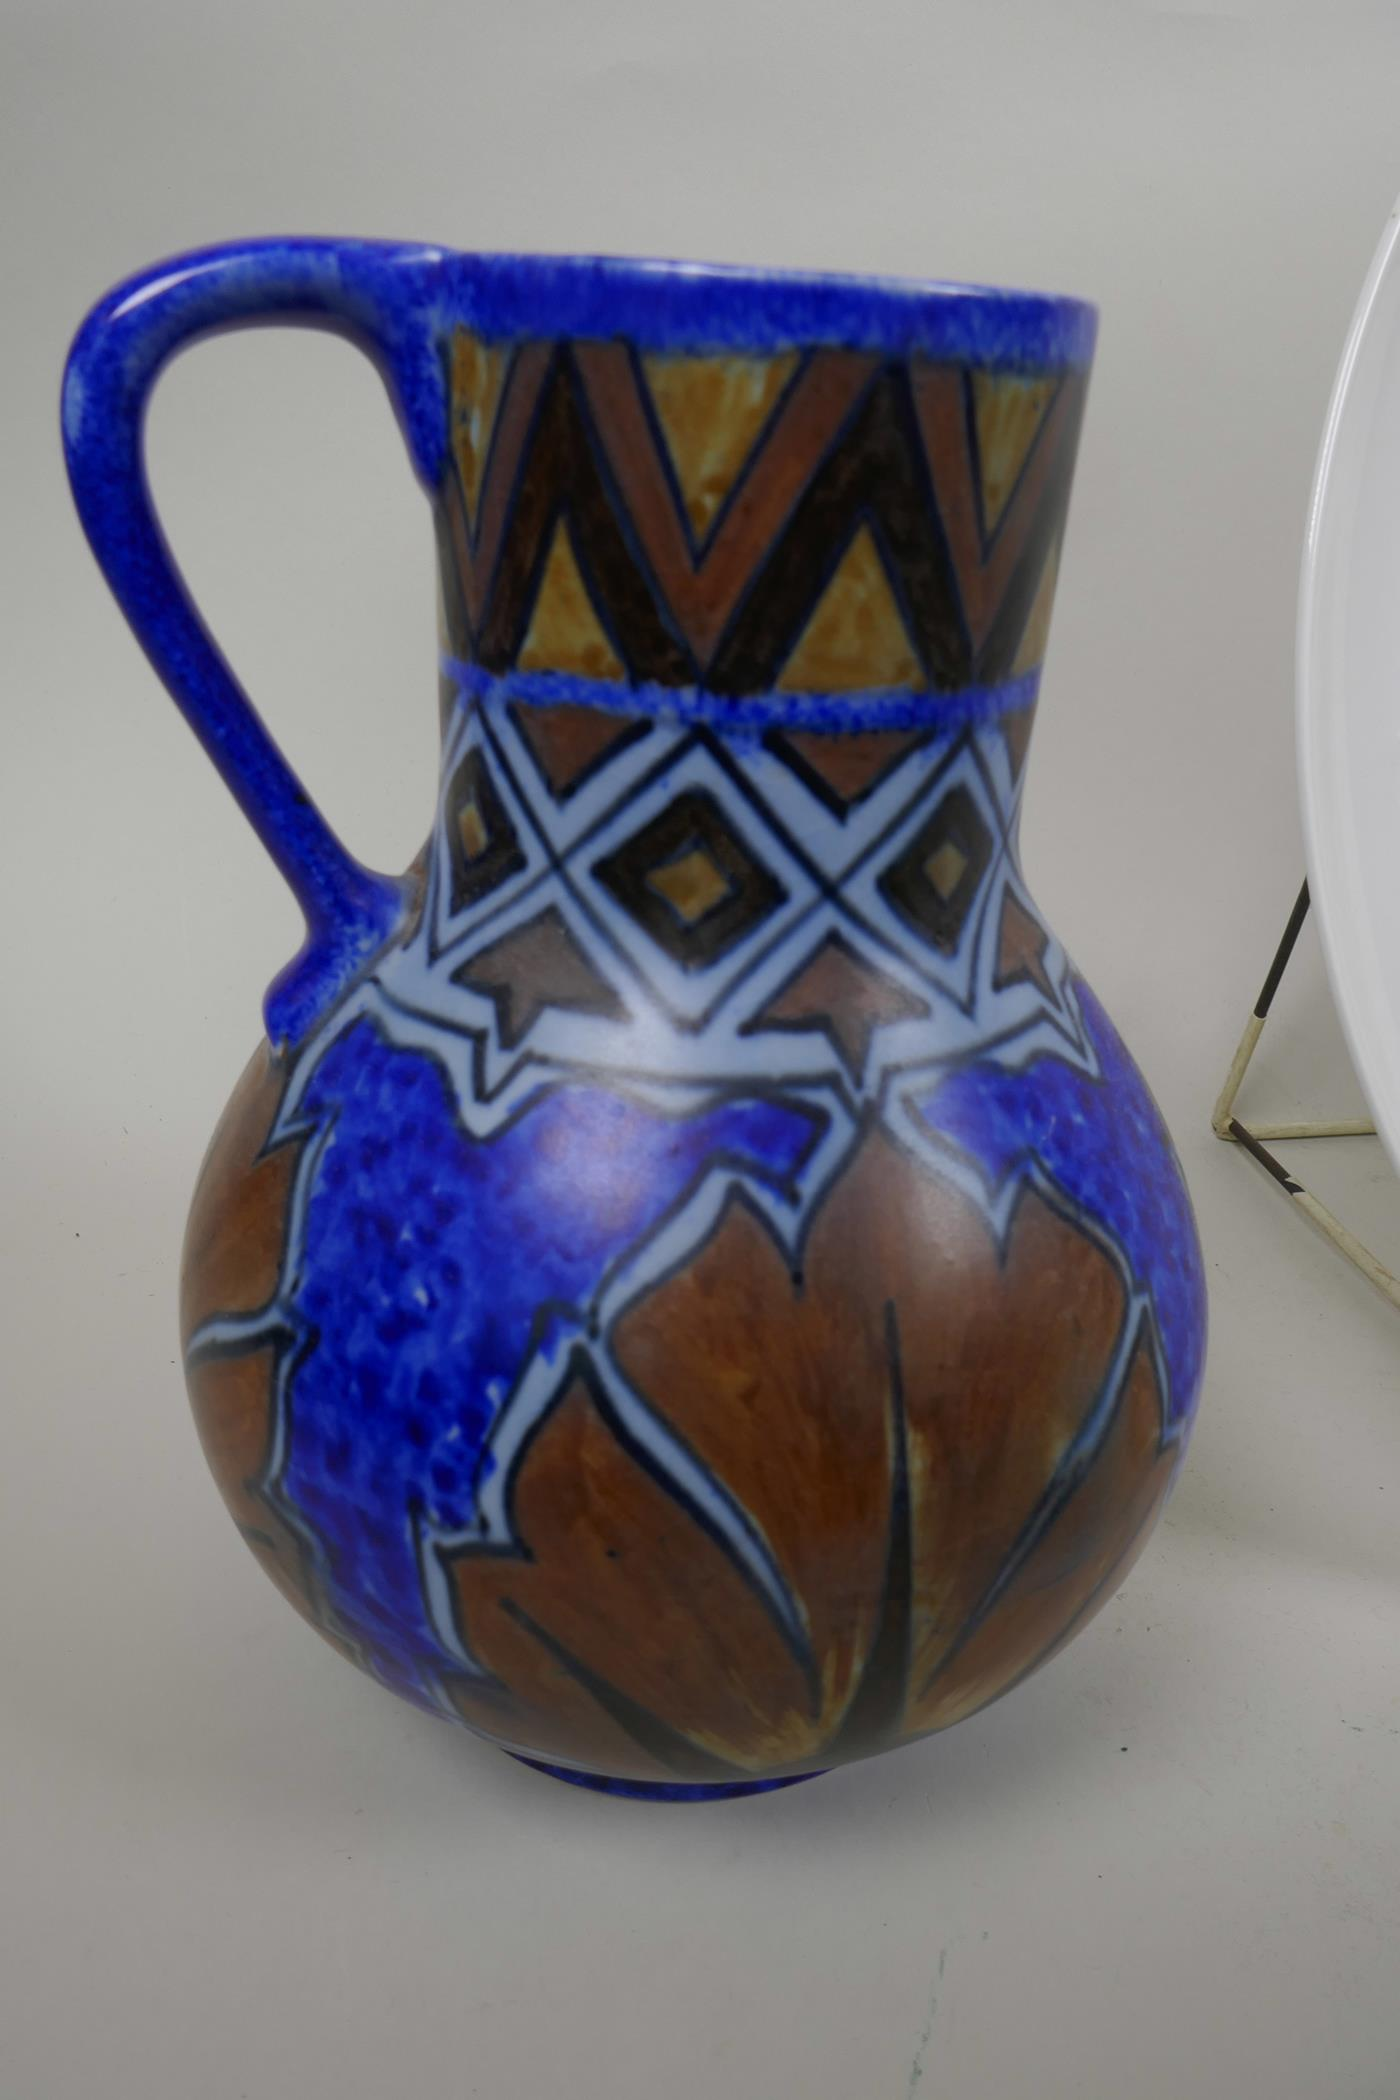 Lot 52 - A Clewes Chameleon ware pottery jug with blue and brown glaze together with a Rosenthal charger